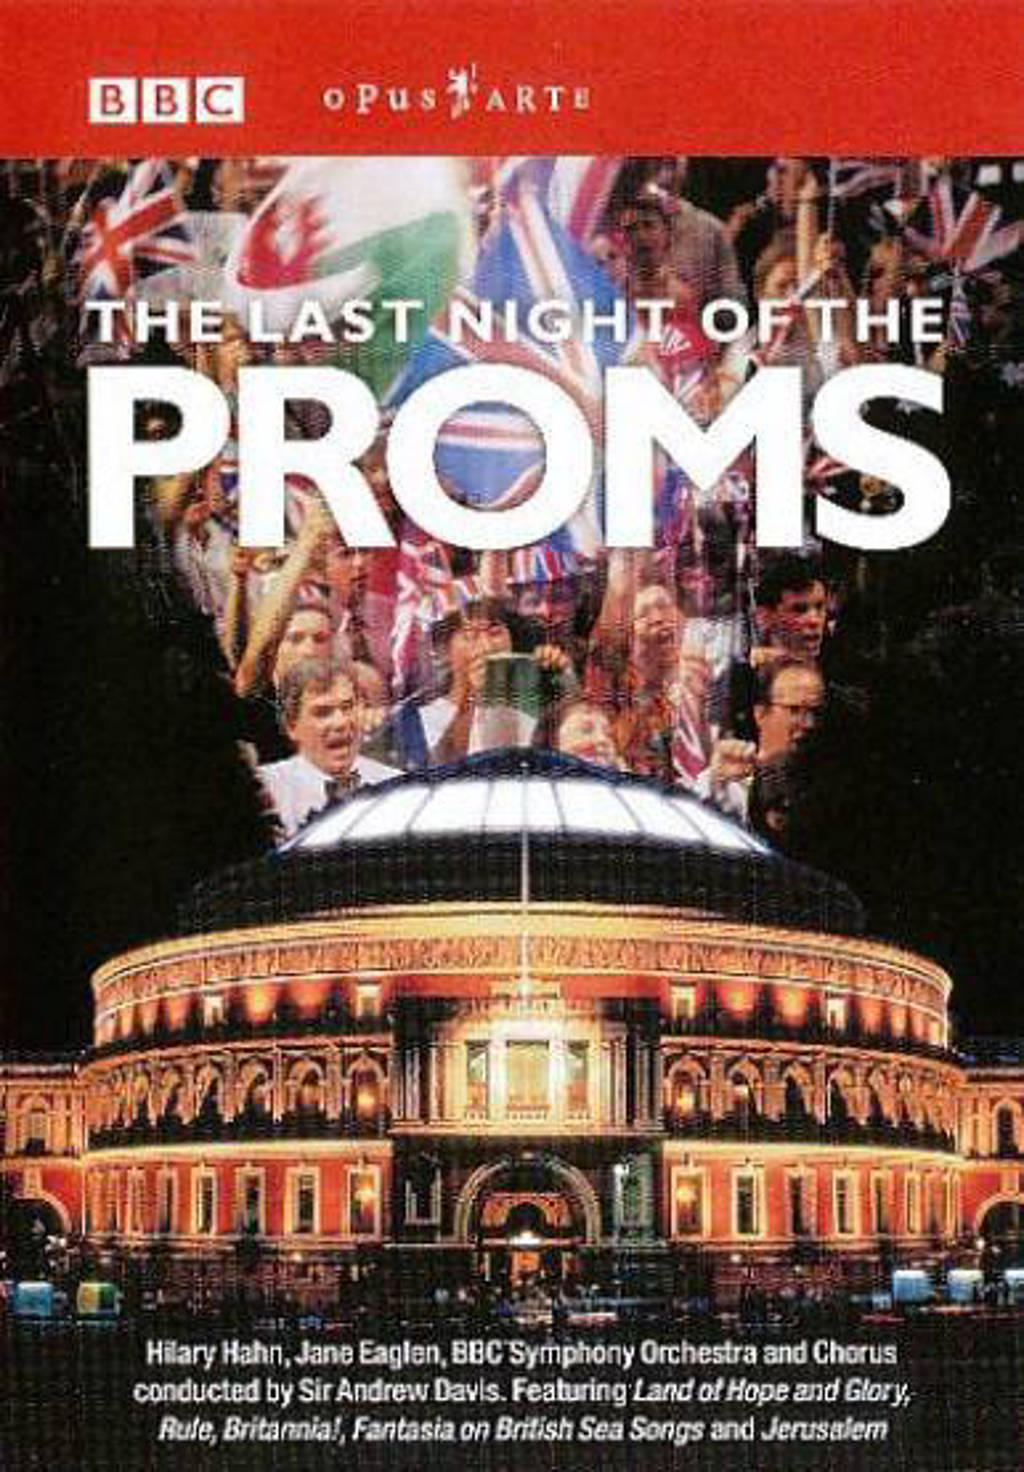 Hahn/Eaglen/BBC Symphony Orchestra - The Last Night Of The Proms (DVD)